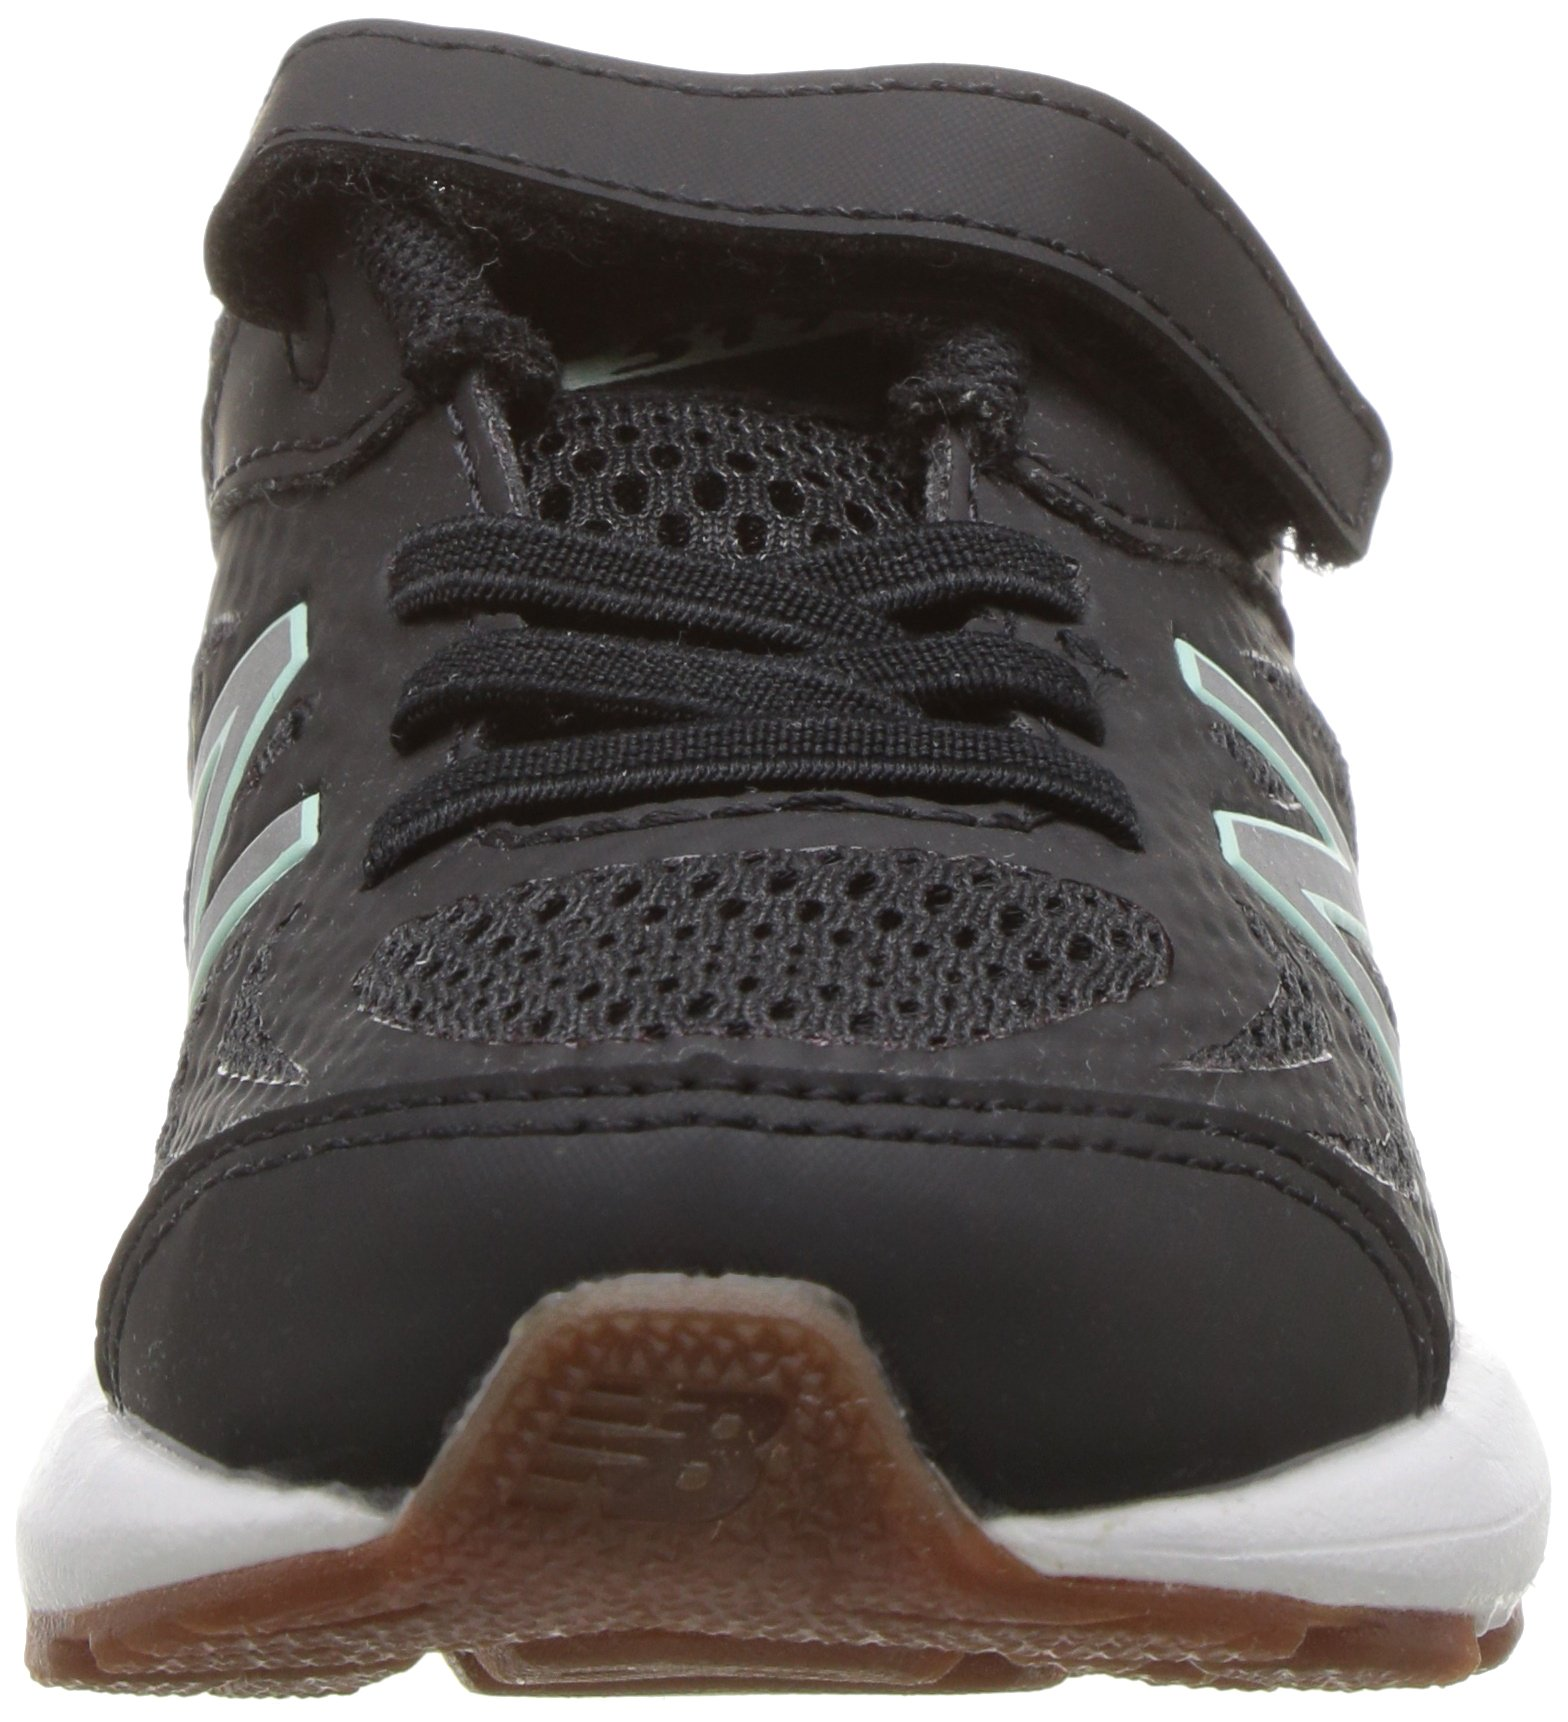 New Balance Girls' 519v1 Hook and Loop Running Shoe Black/Seafoam 2 M US Infant by New Balance (Image #4)